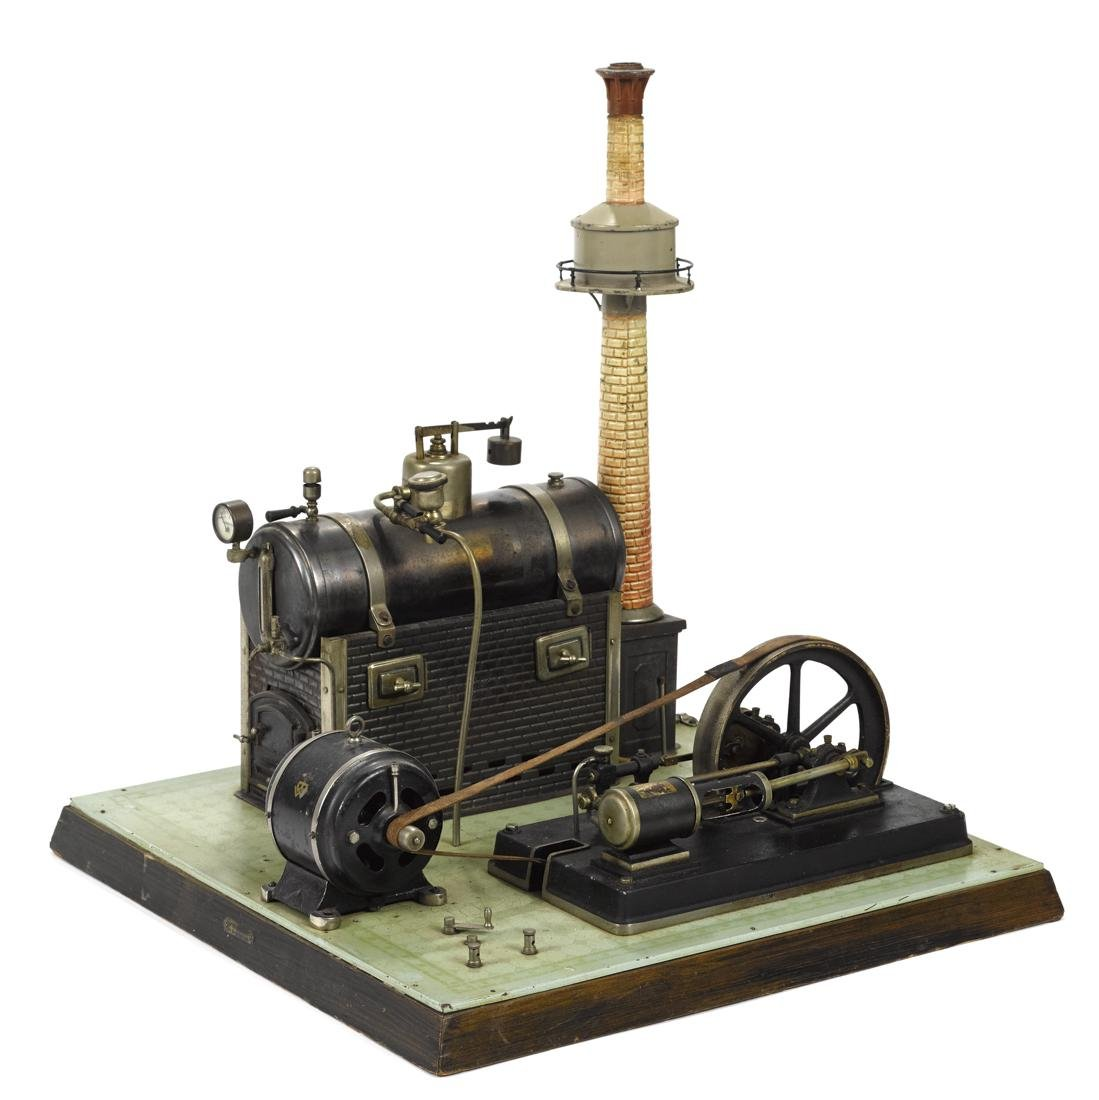 Bing steam plant with dynamo and a single cylinder